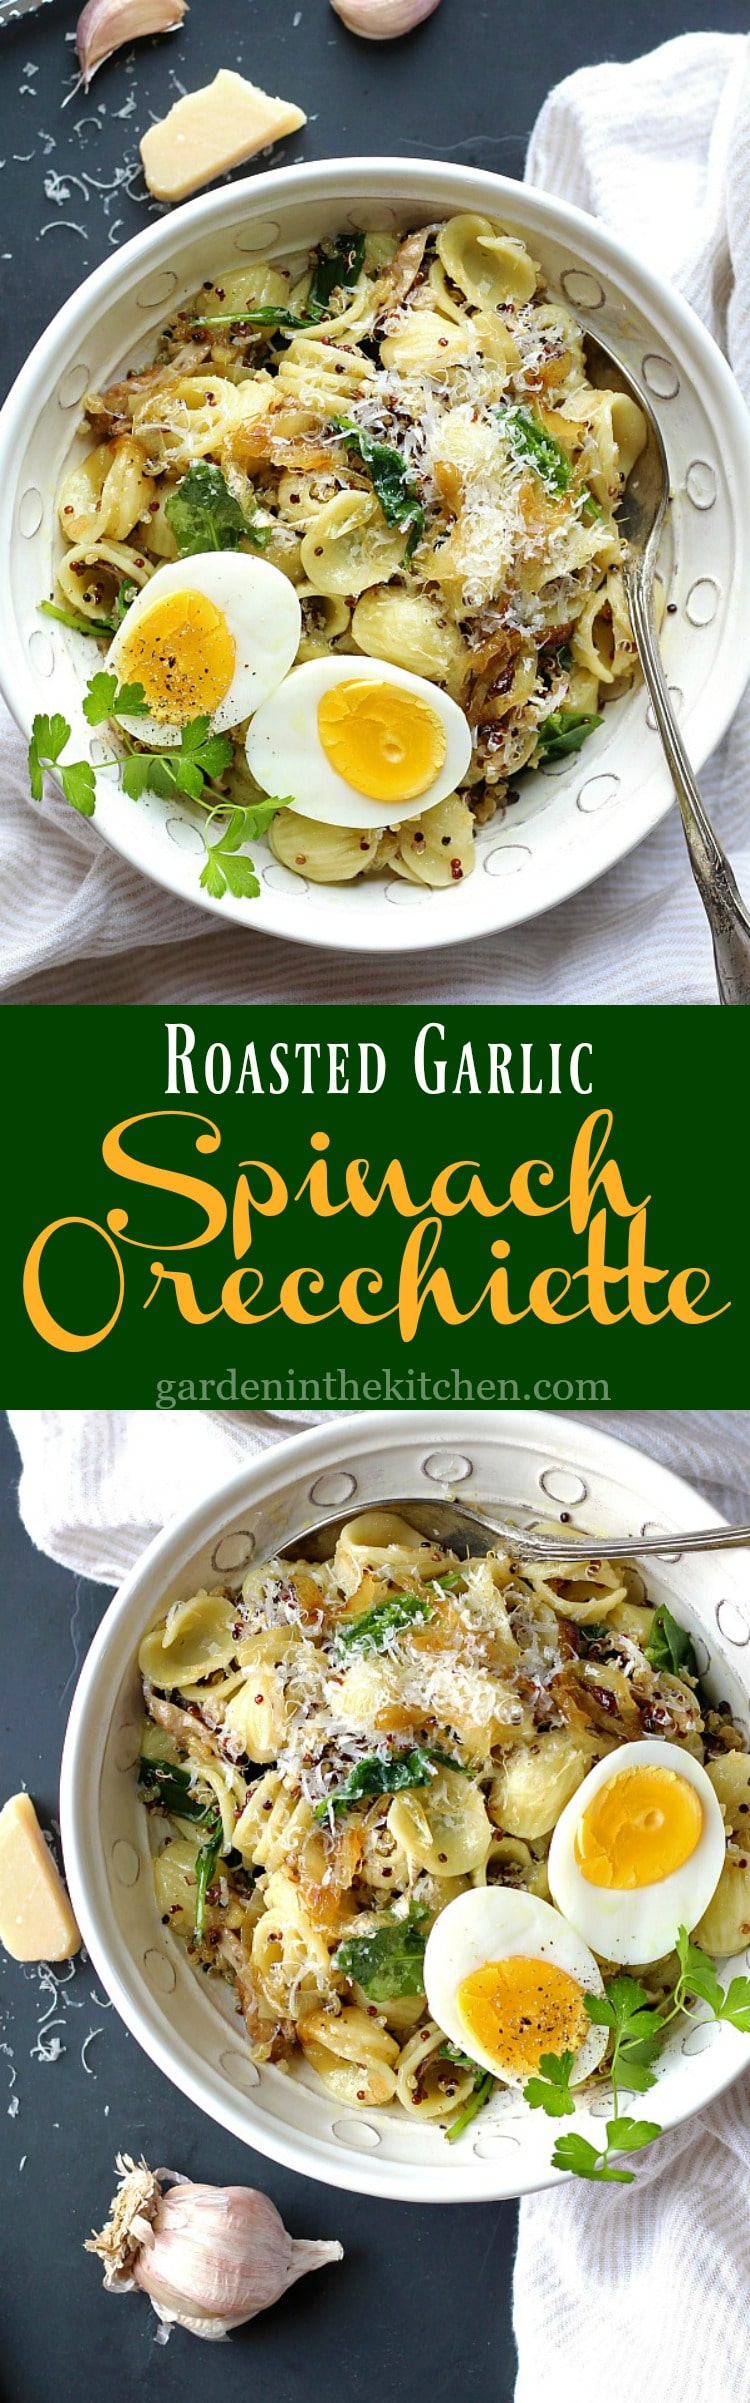 Roasted Garlic Spinach Orecchiette